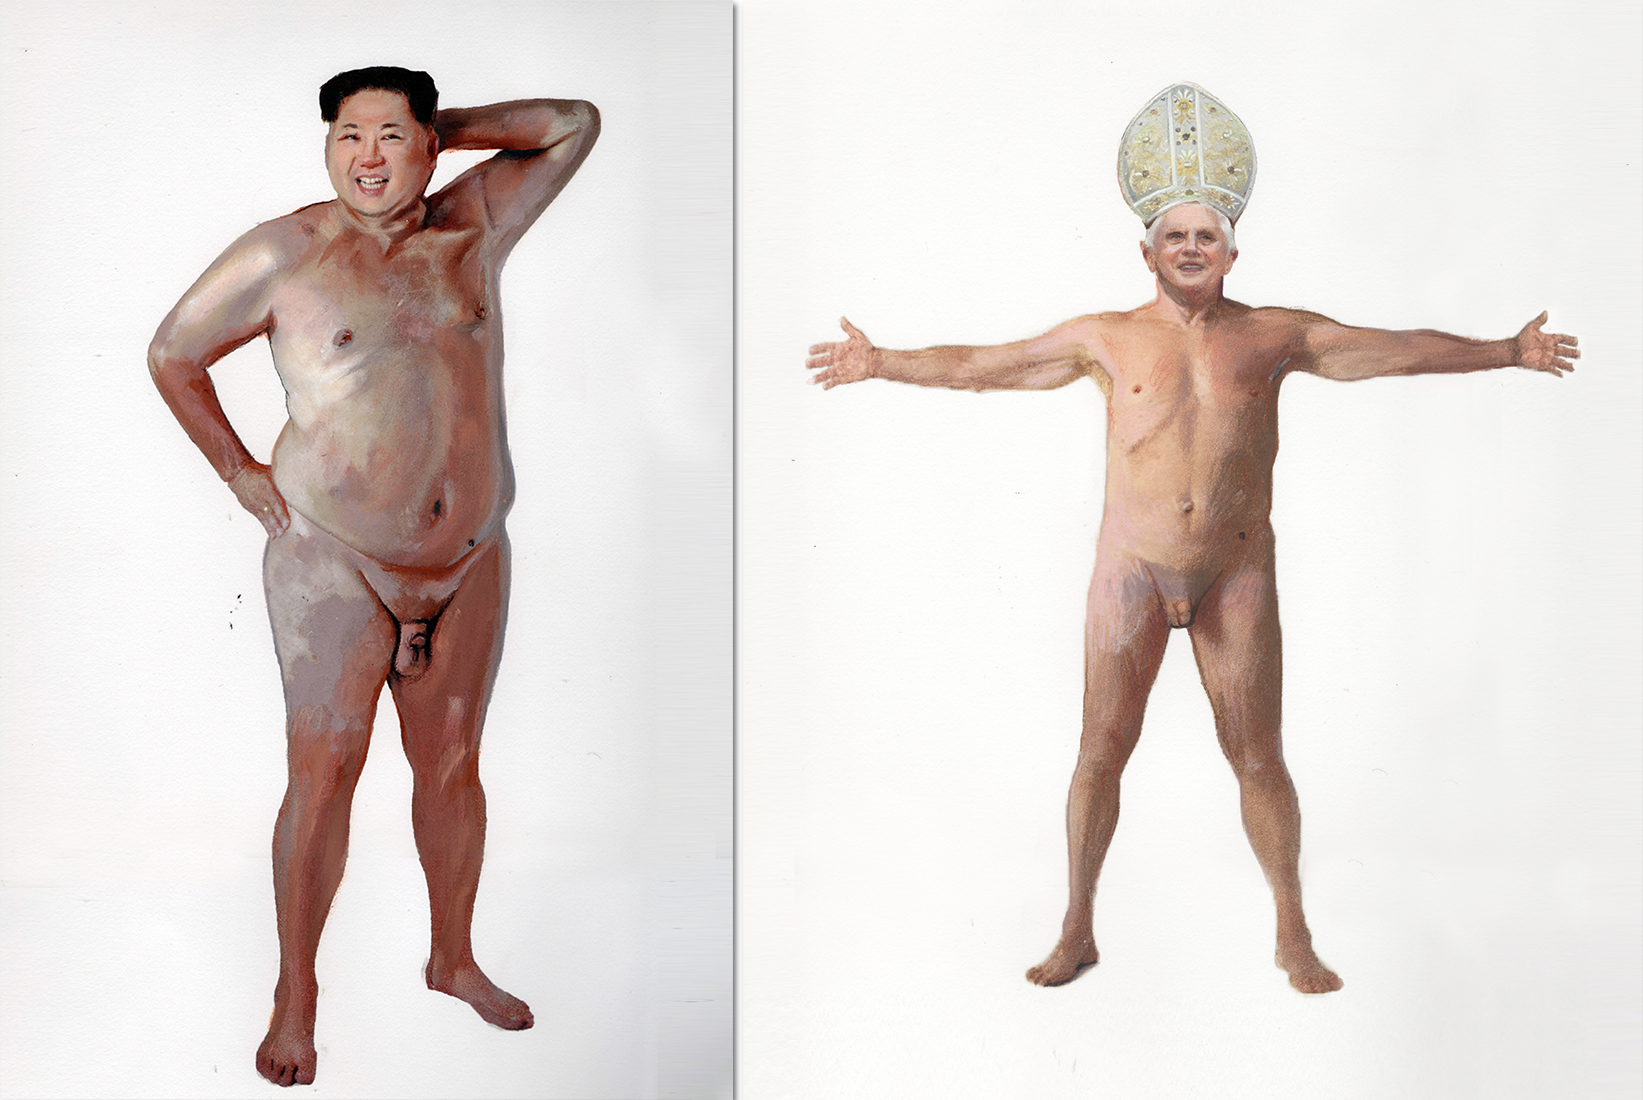 Hairless cock family nudism